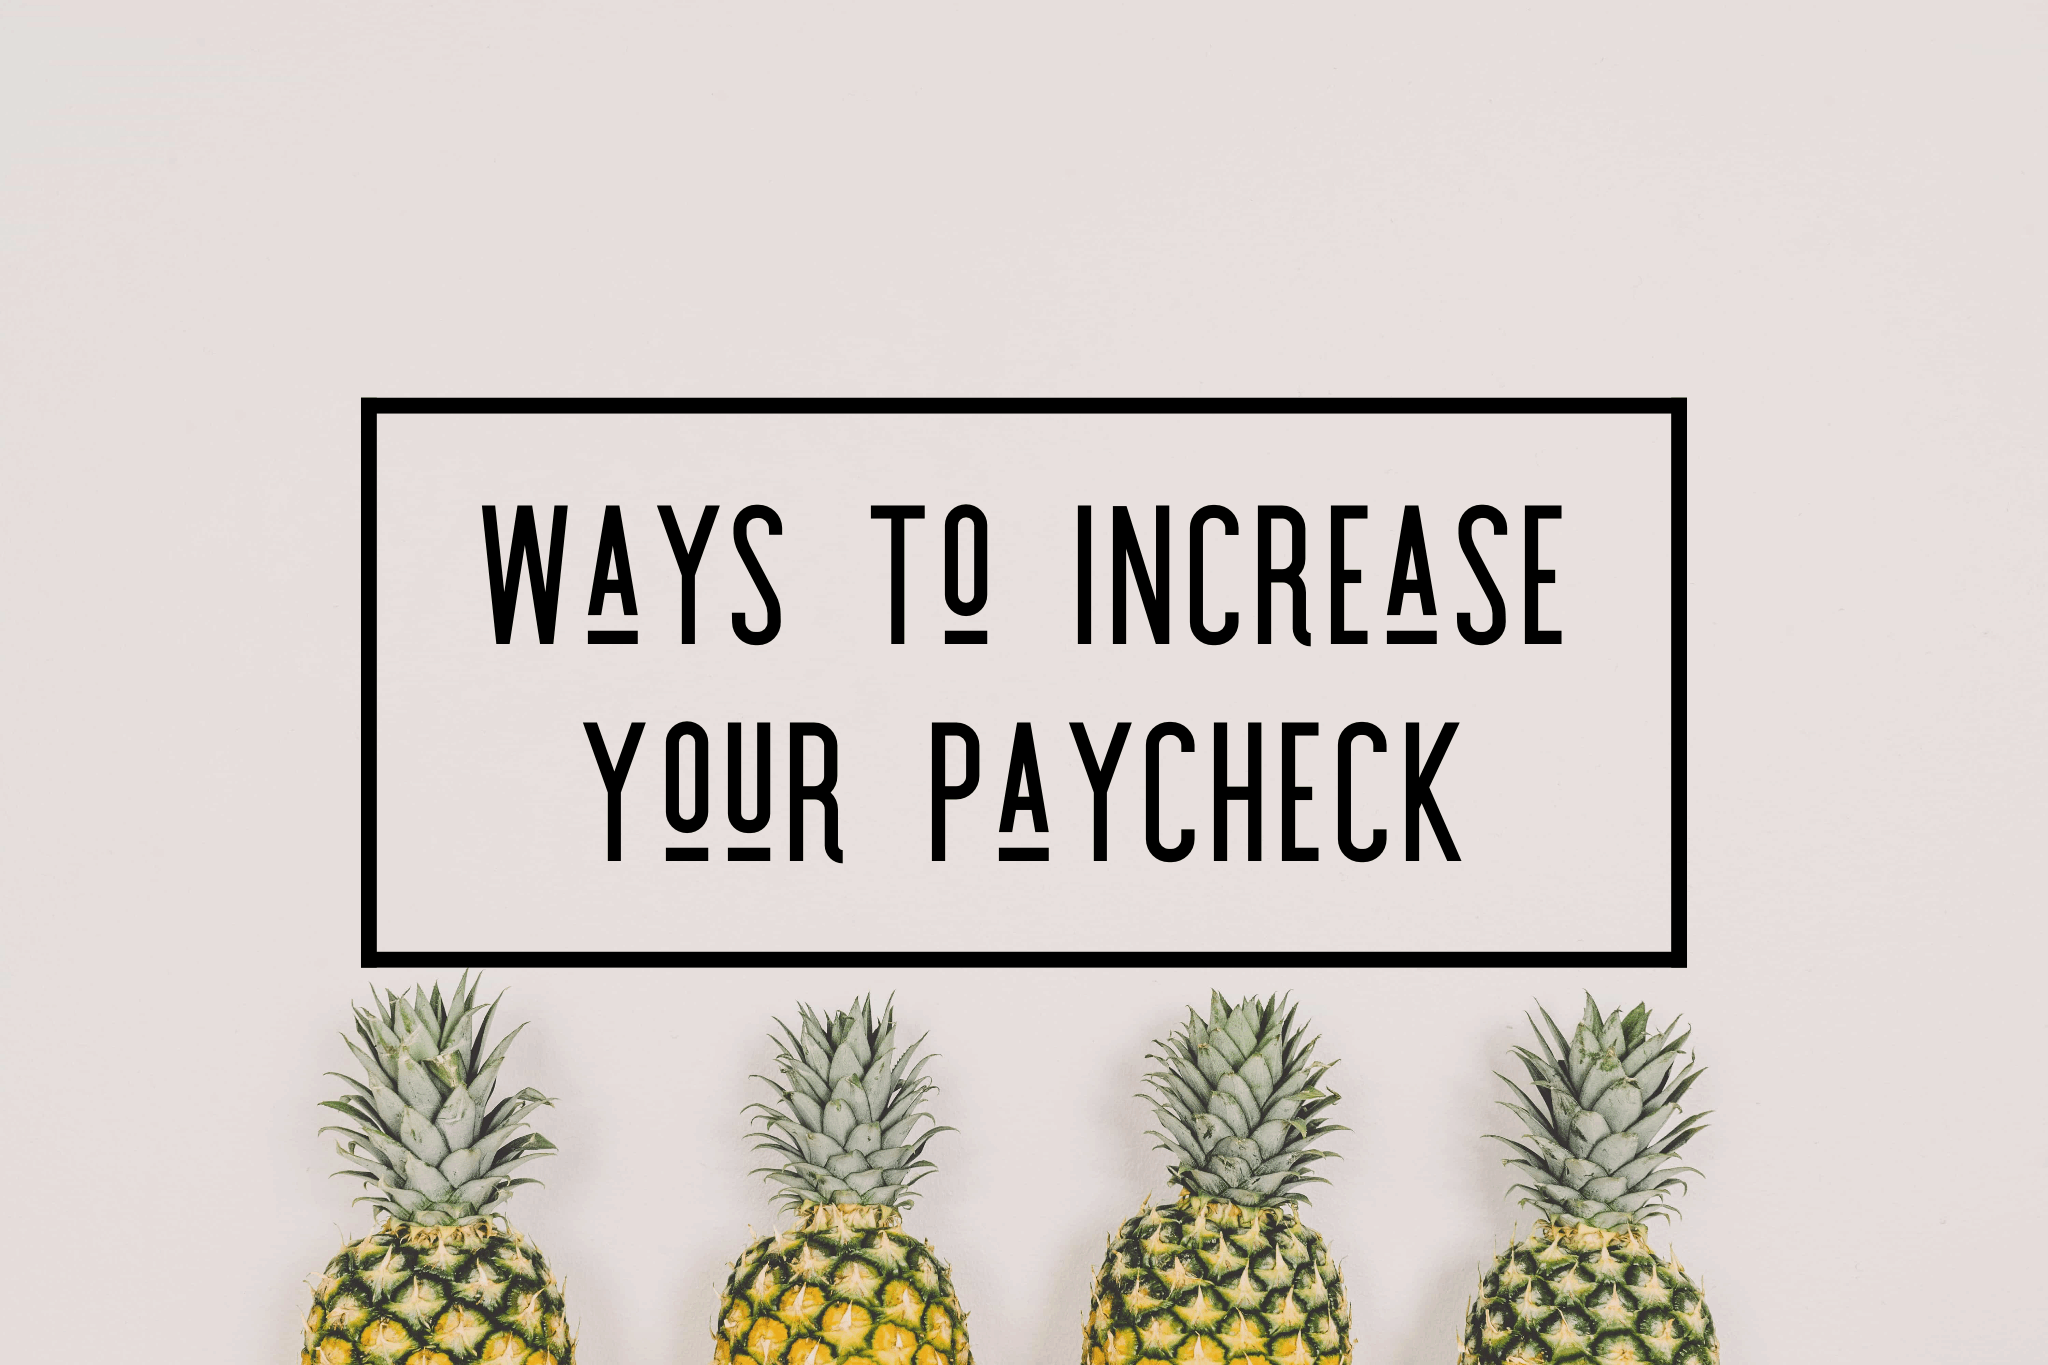 Increase Your Paycheck